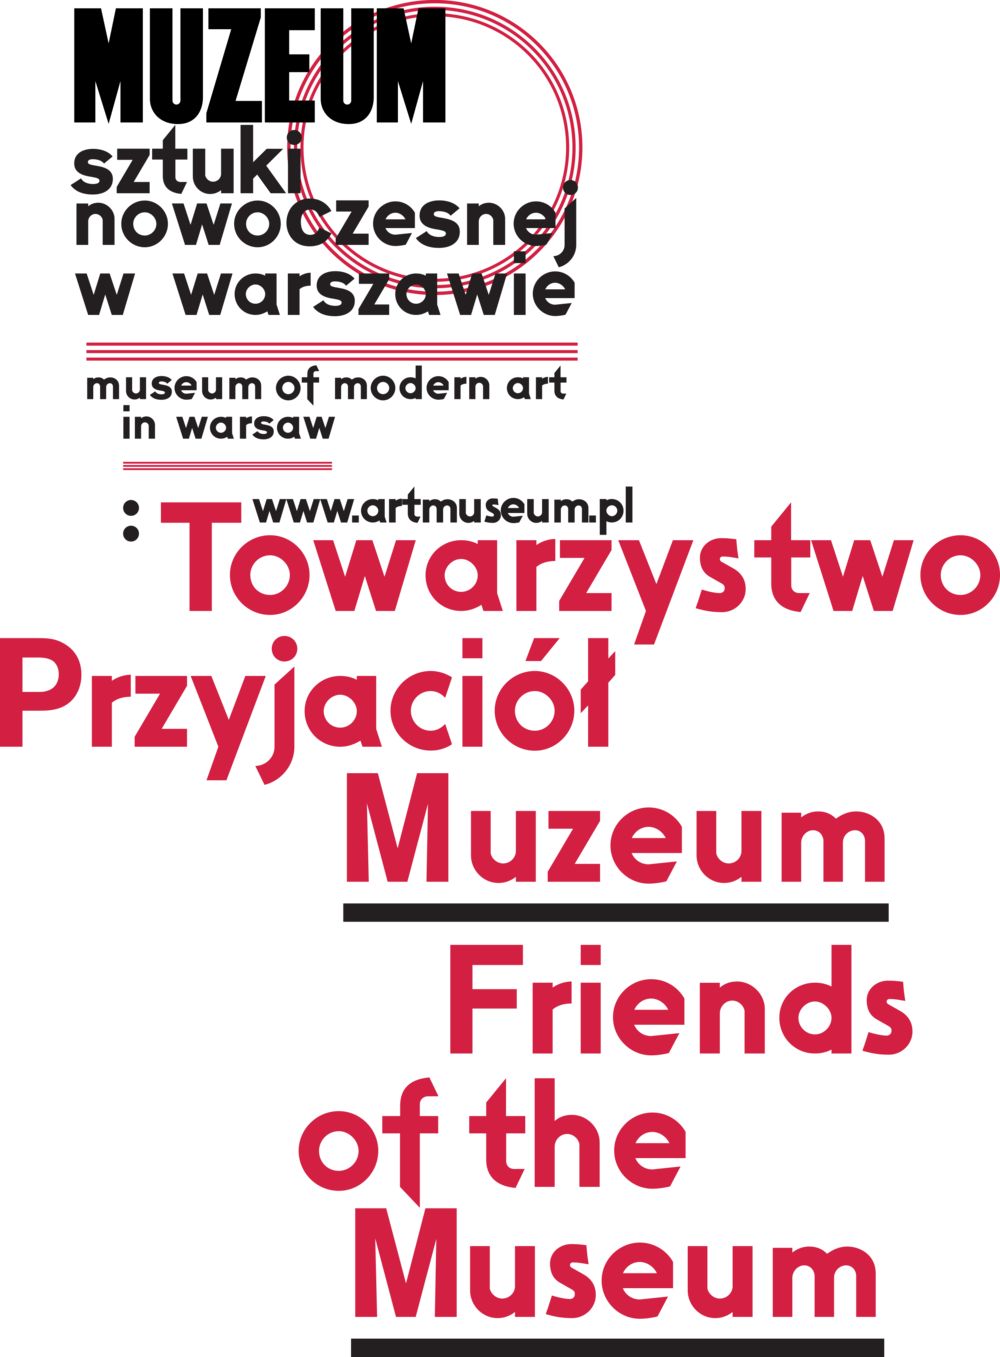 Friends-of-Museums---Warsaw.png